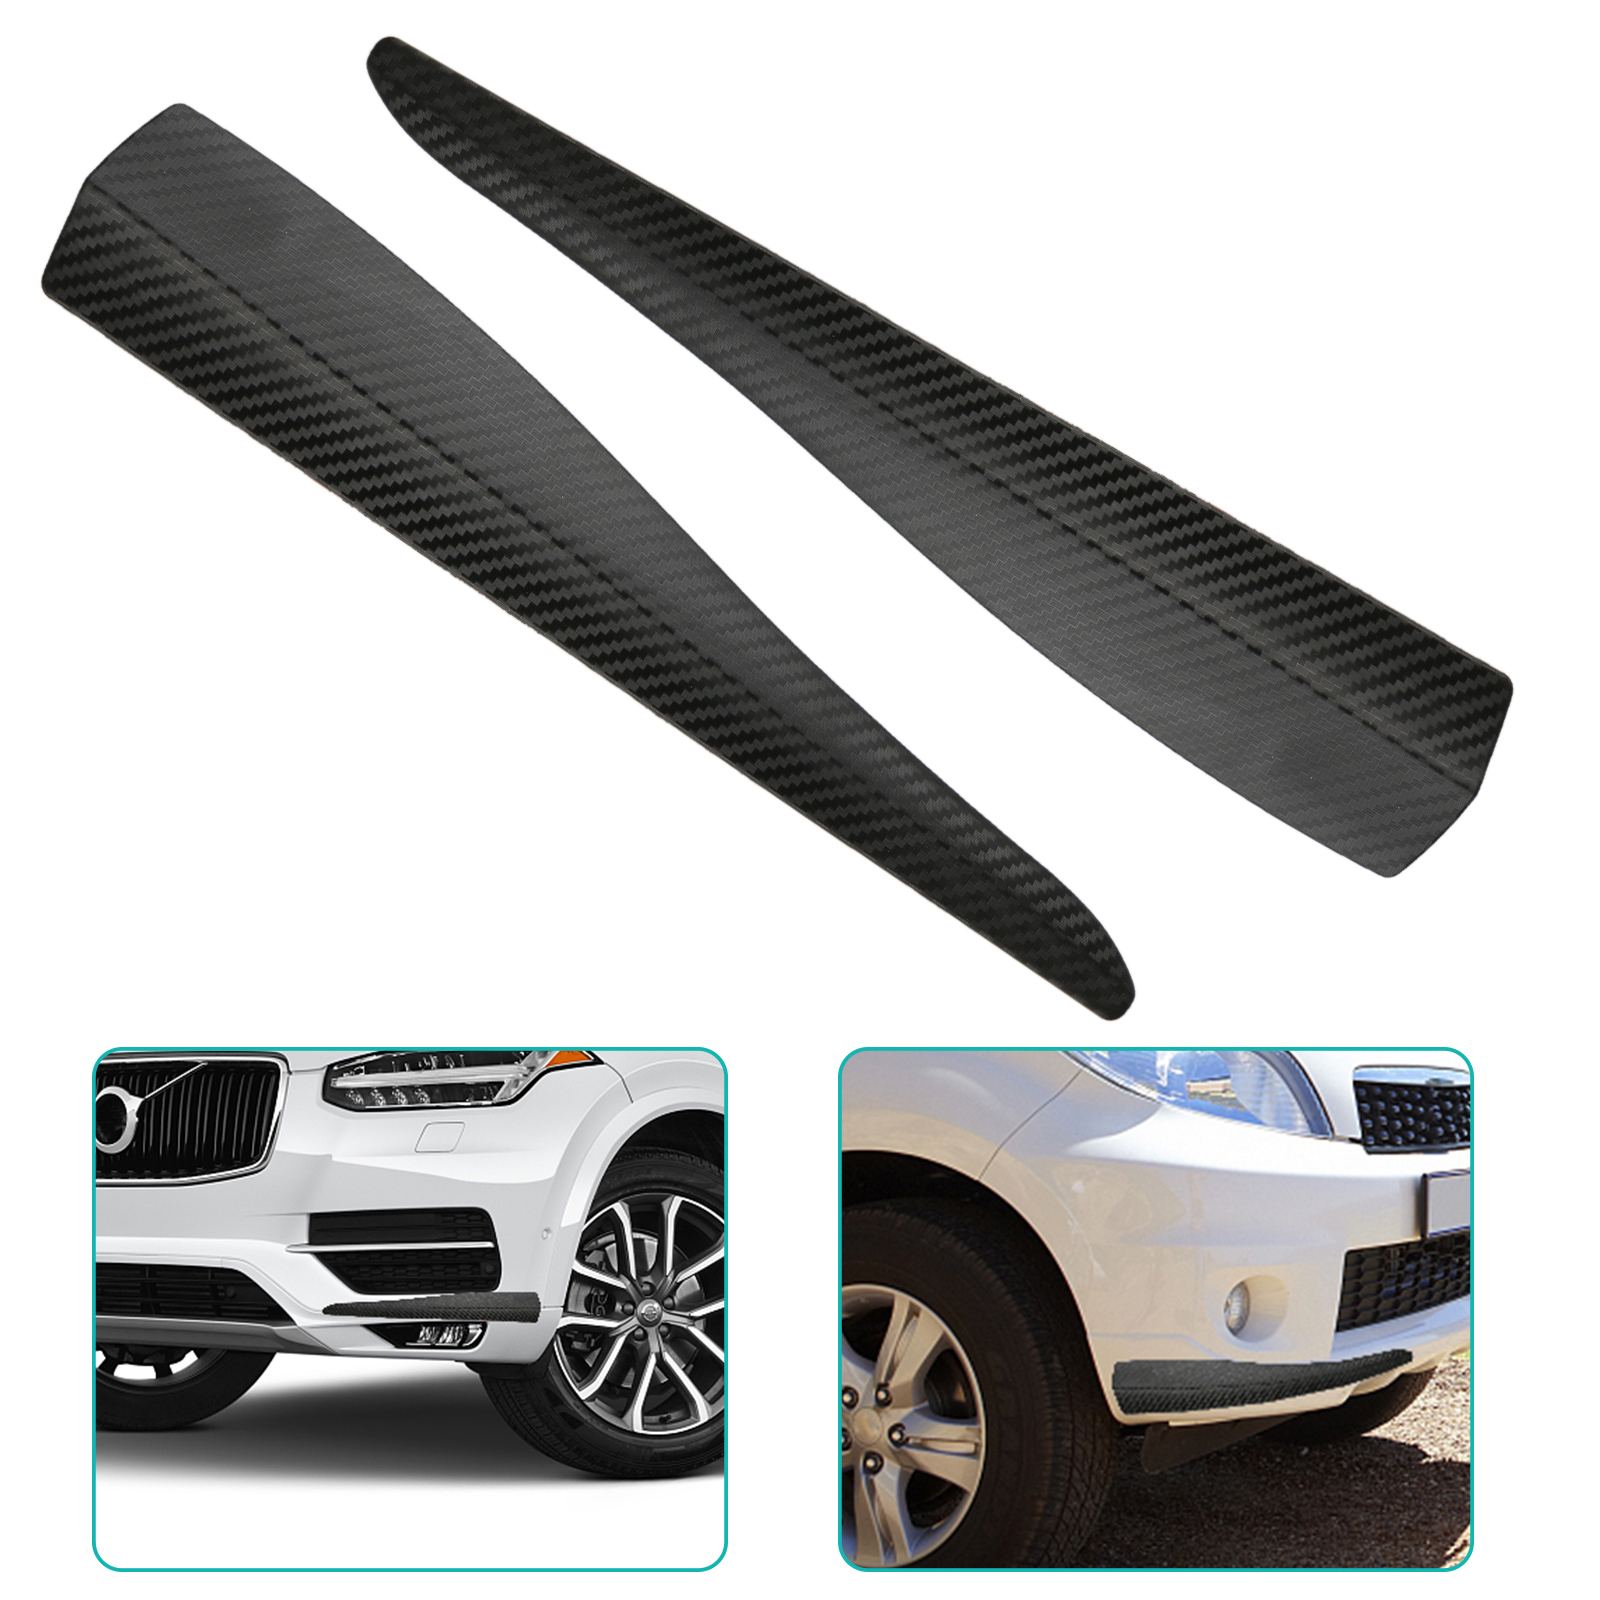 2pcs Universal Car Front Rear Carbon Fiber Pattern Bumper Corner Extended Protector Lip Guards